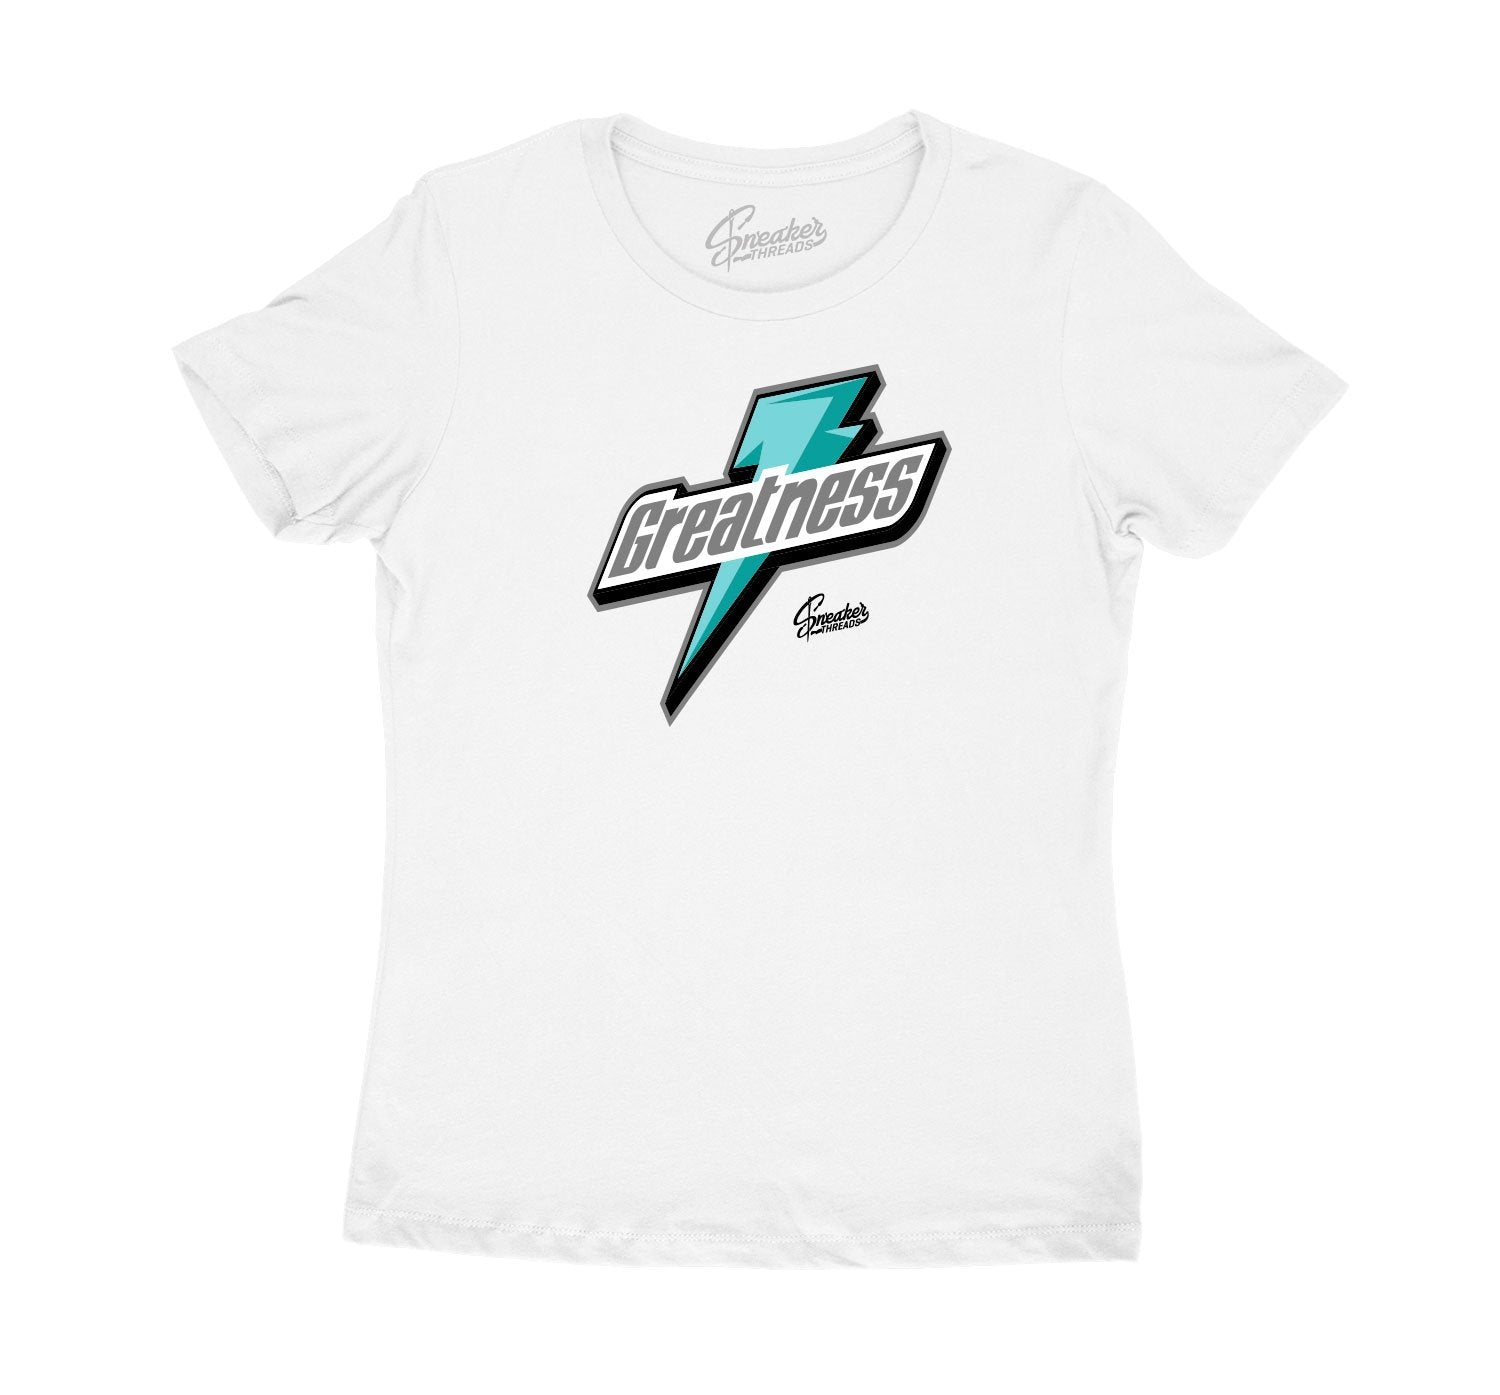 womens shirts to match the Jordan 5 island green sneakers